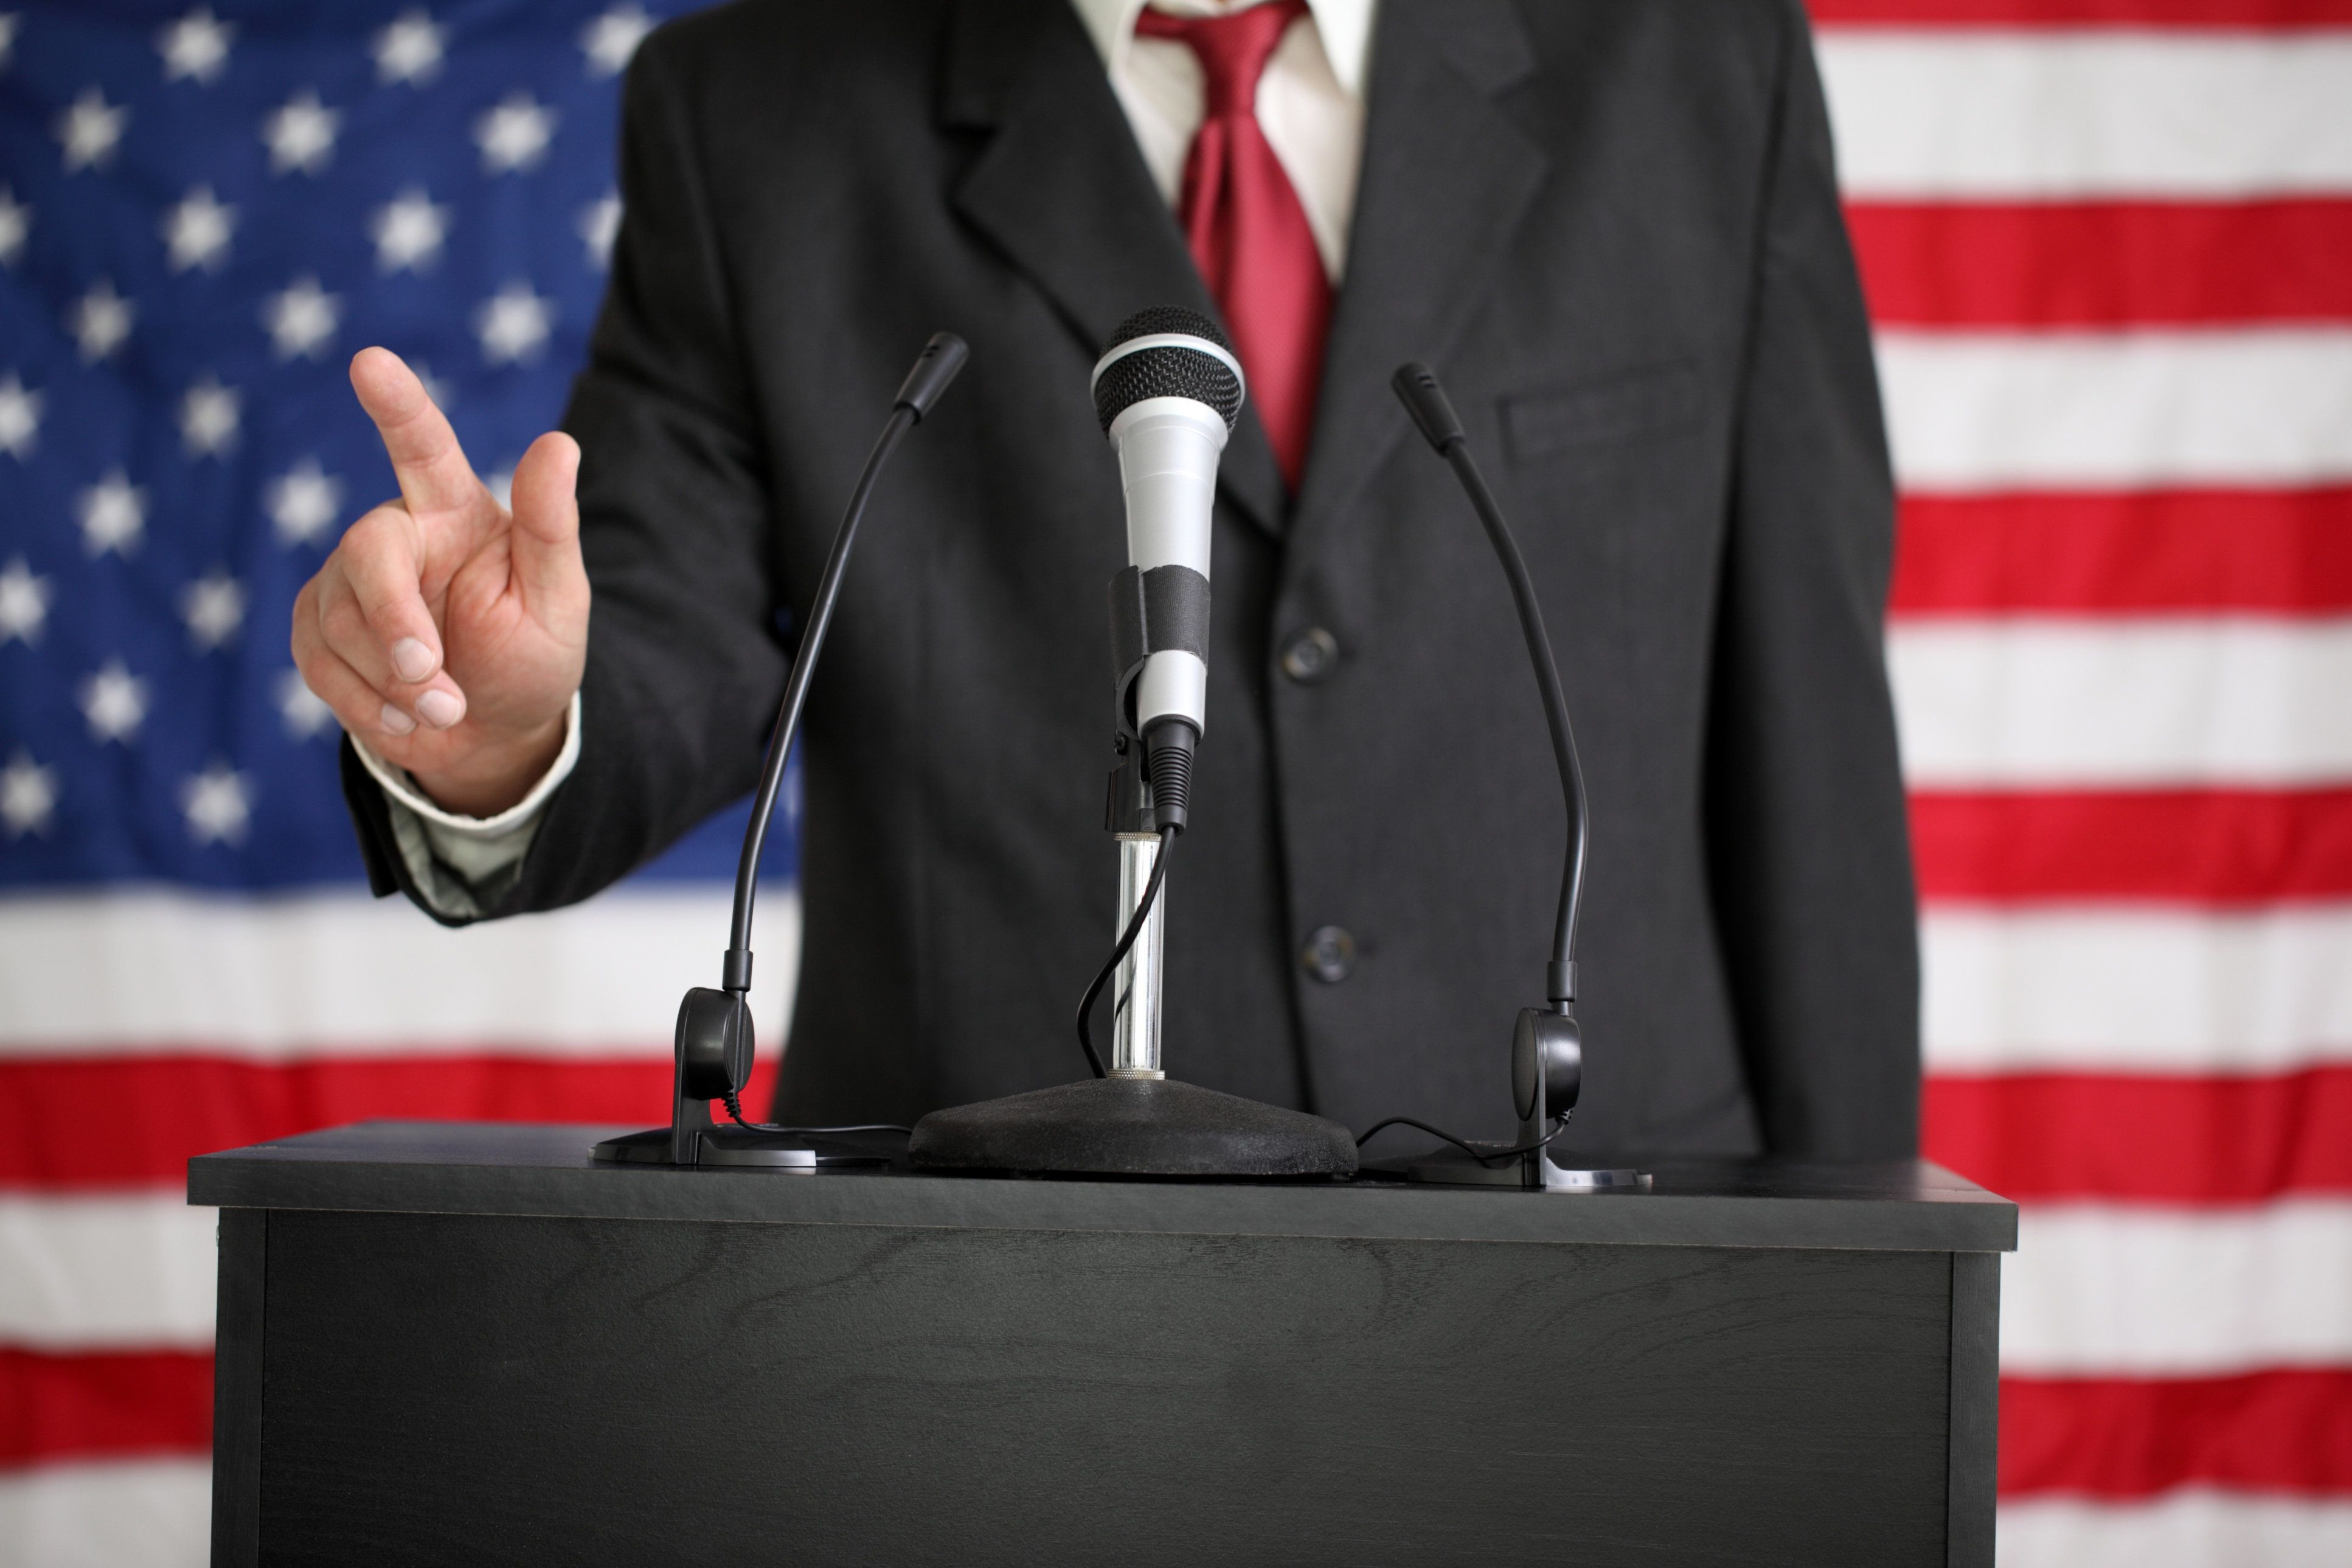 Politician speaking at podium with American Flag in background